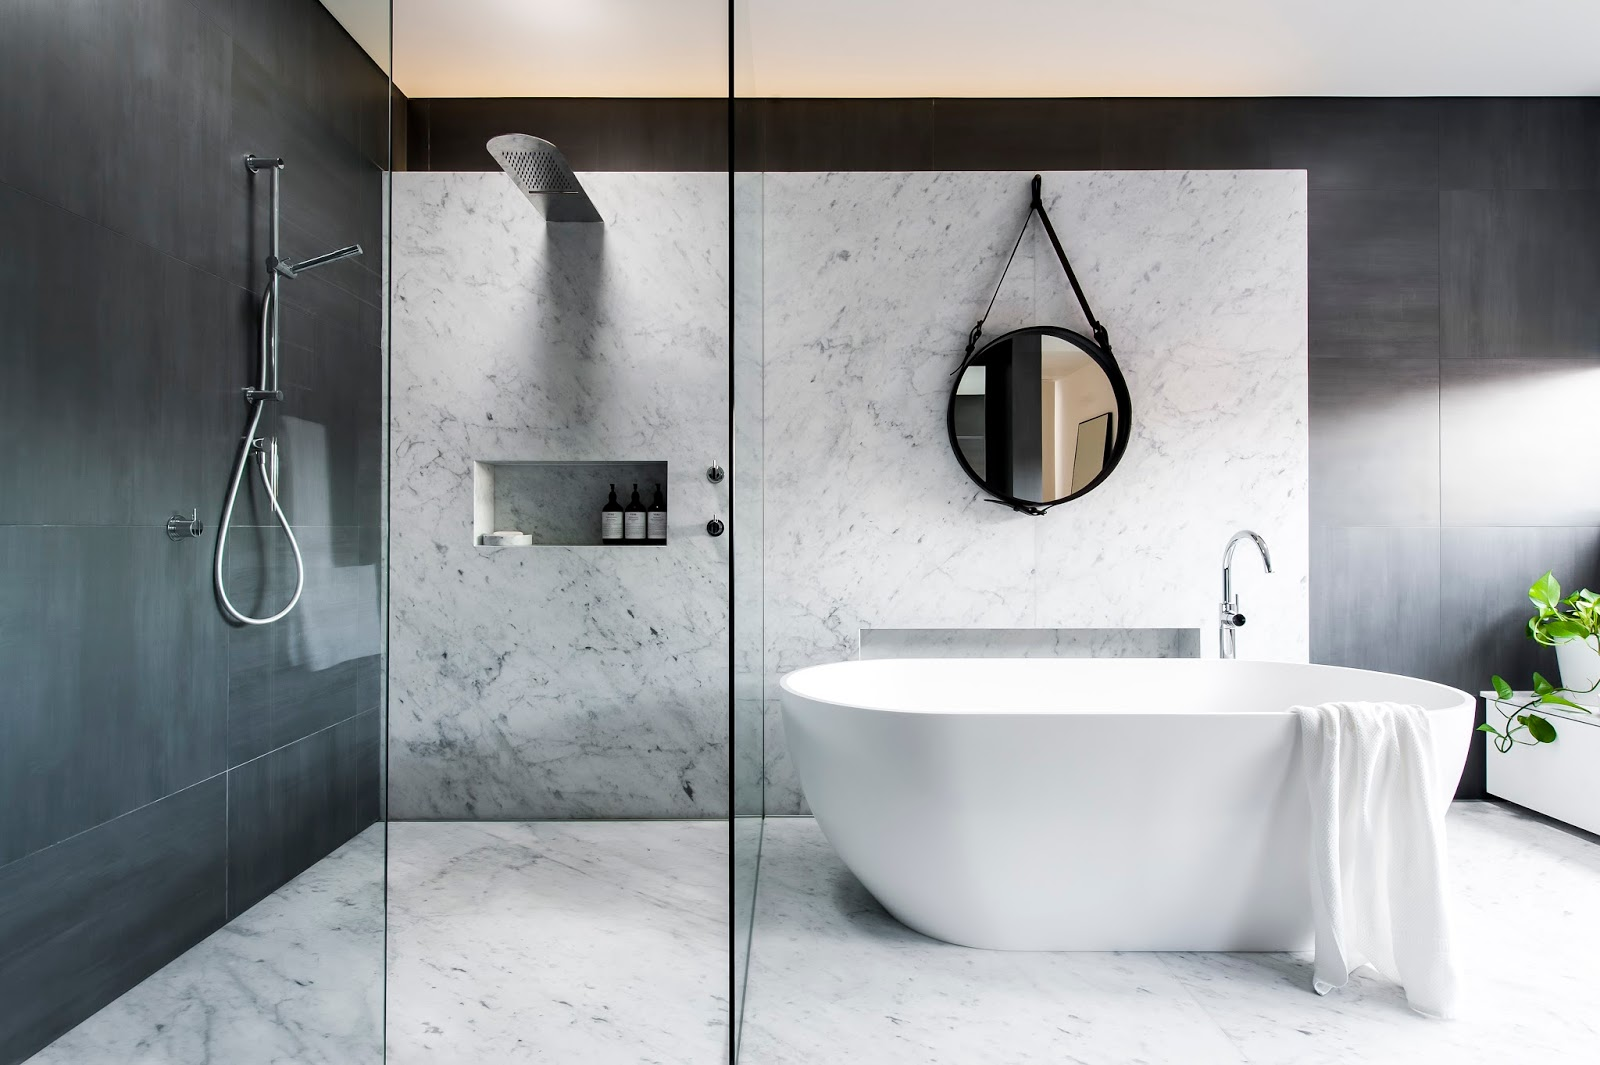 Minosa: Understated elegance creates a stunning bathroom.